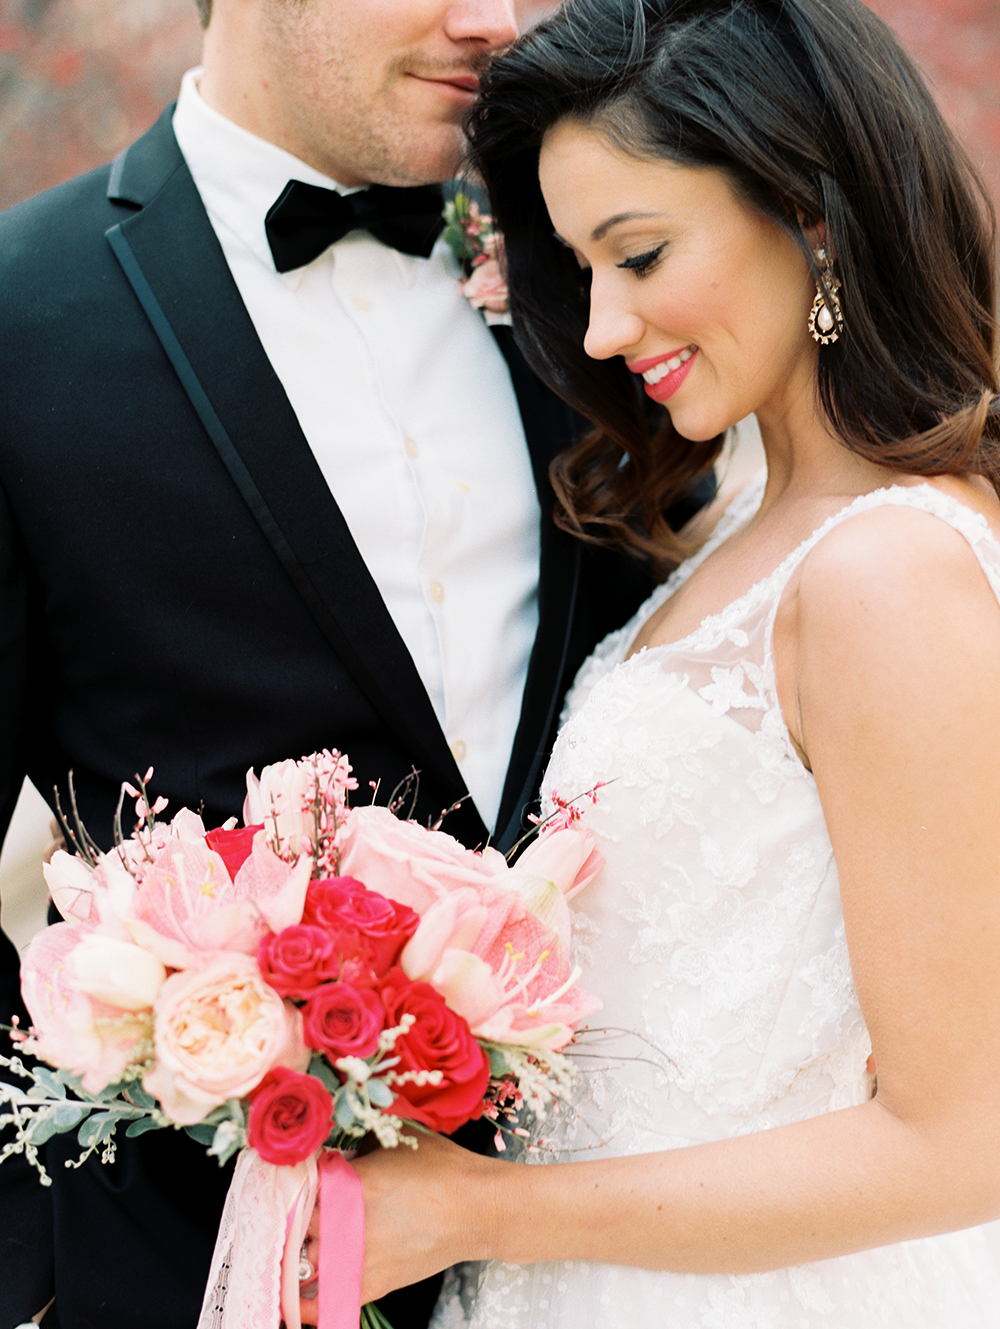 pink weddings - photo by Erin Stubblefield http://ruffledblog.com/chic-city-valentines-day-wedding-inspiration